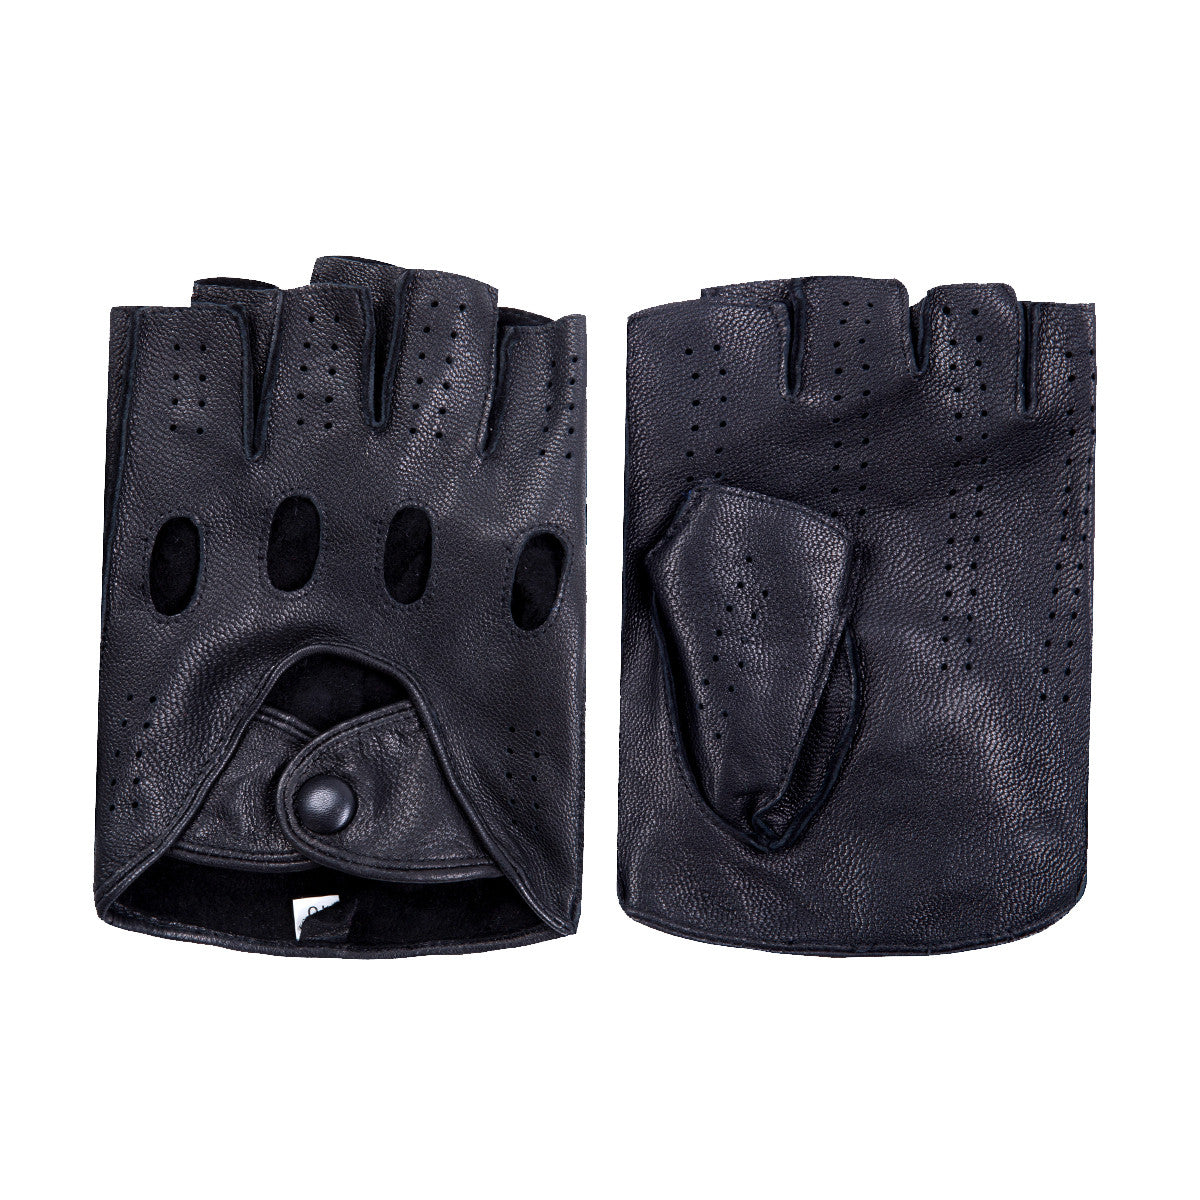 Black gloves online -  Matsu X Amazon Women Lambskin Driving Fingerless Leather Gloves Unlined M9407